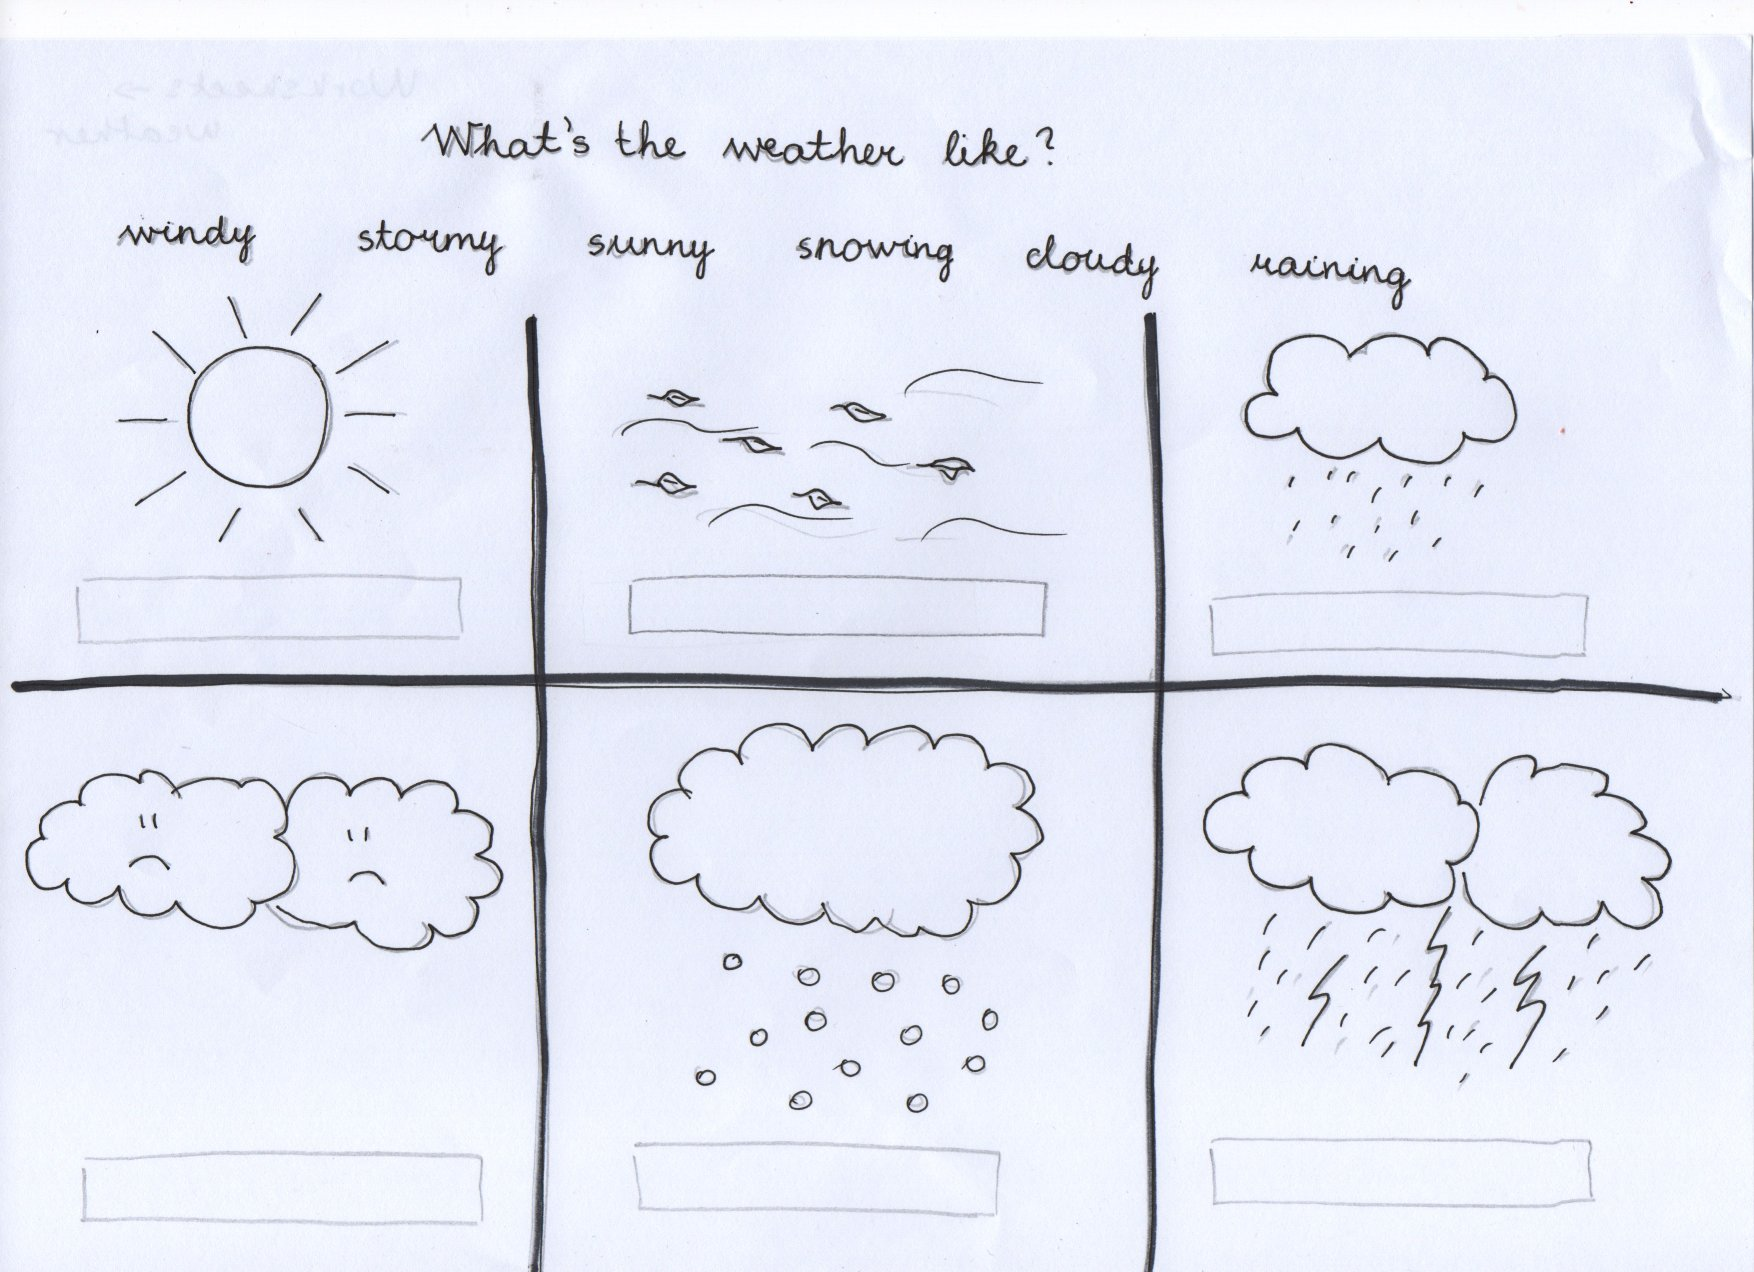 For Snowy Weather Worksheet Preschoolers For Best Free